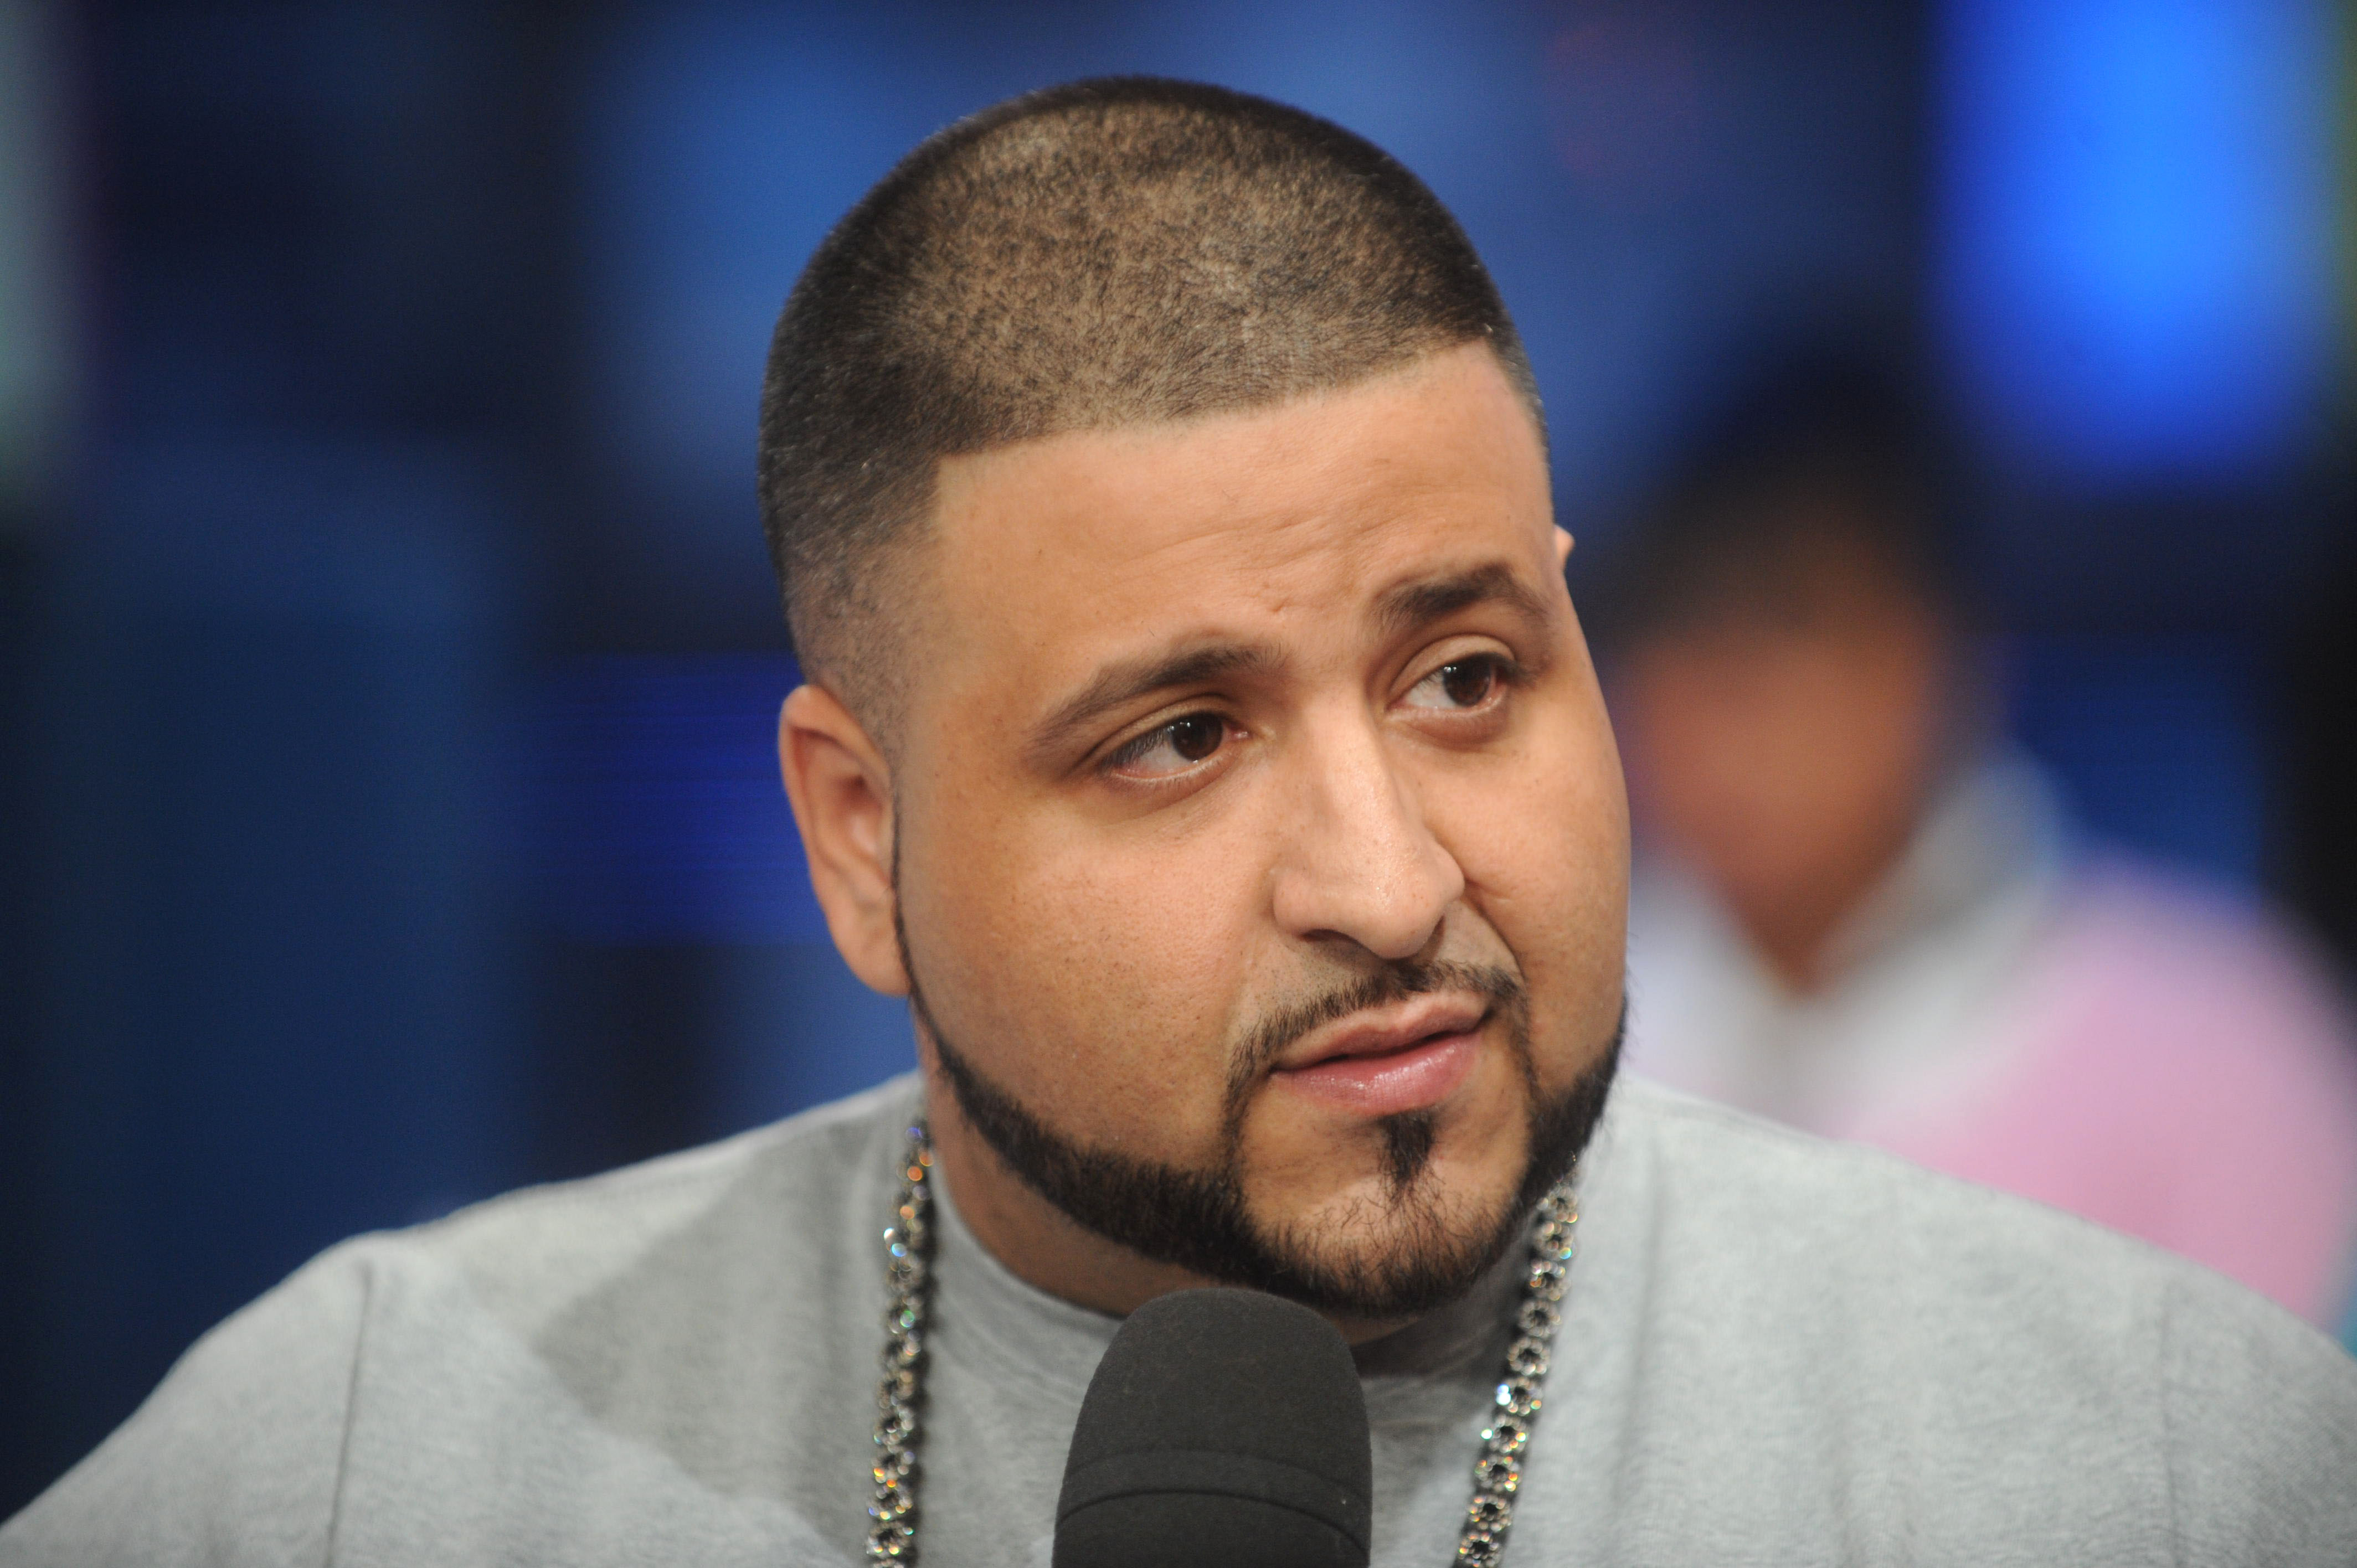 DJ Khaled Reveals He and His Family Have Recovered from COVID-19: 'We're All Good'